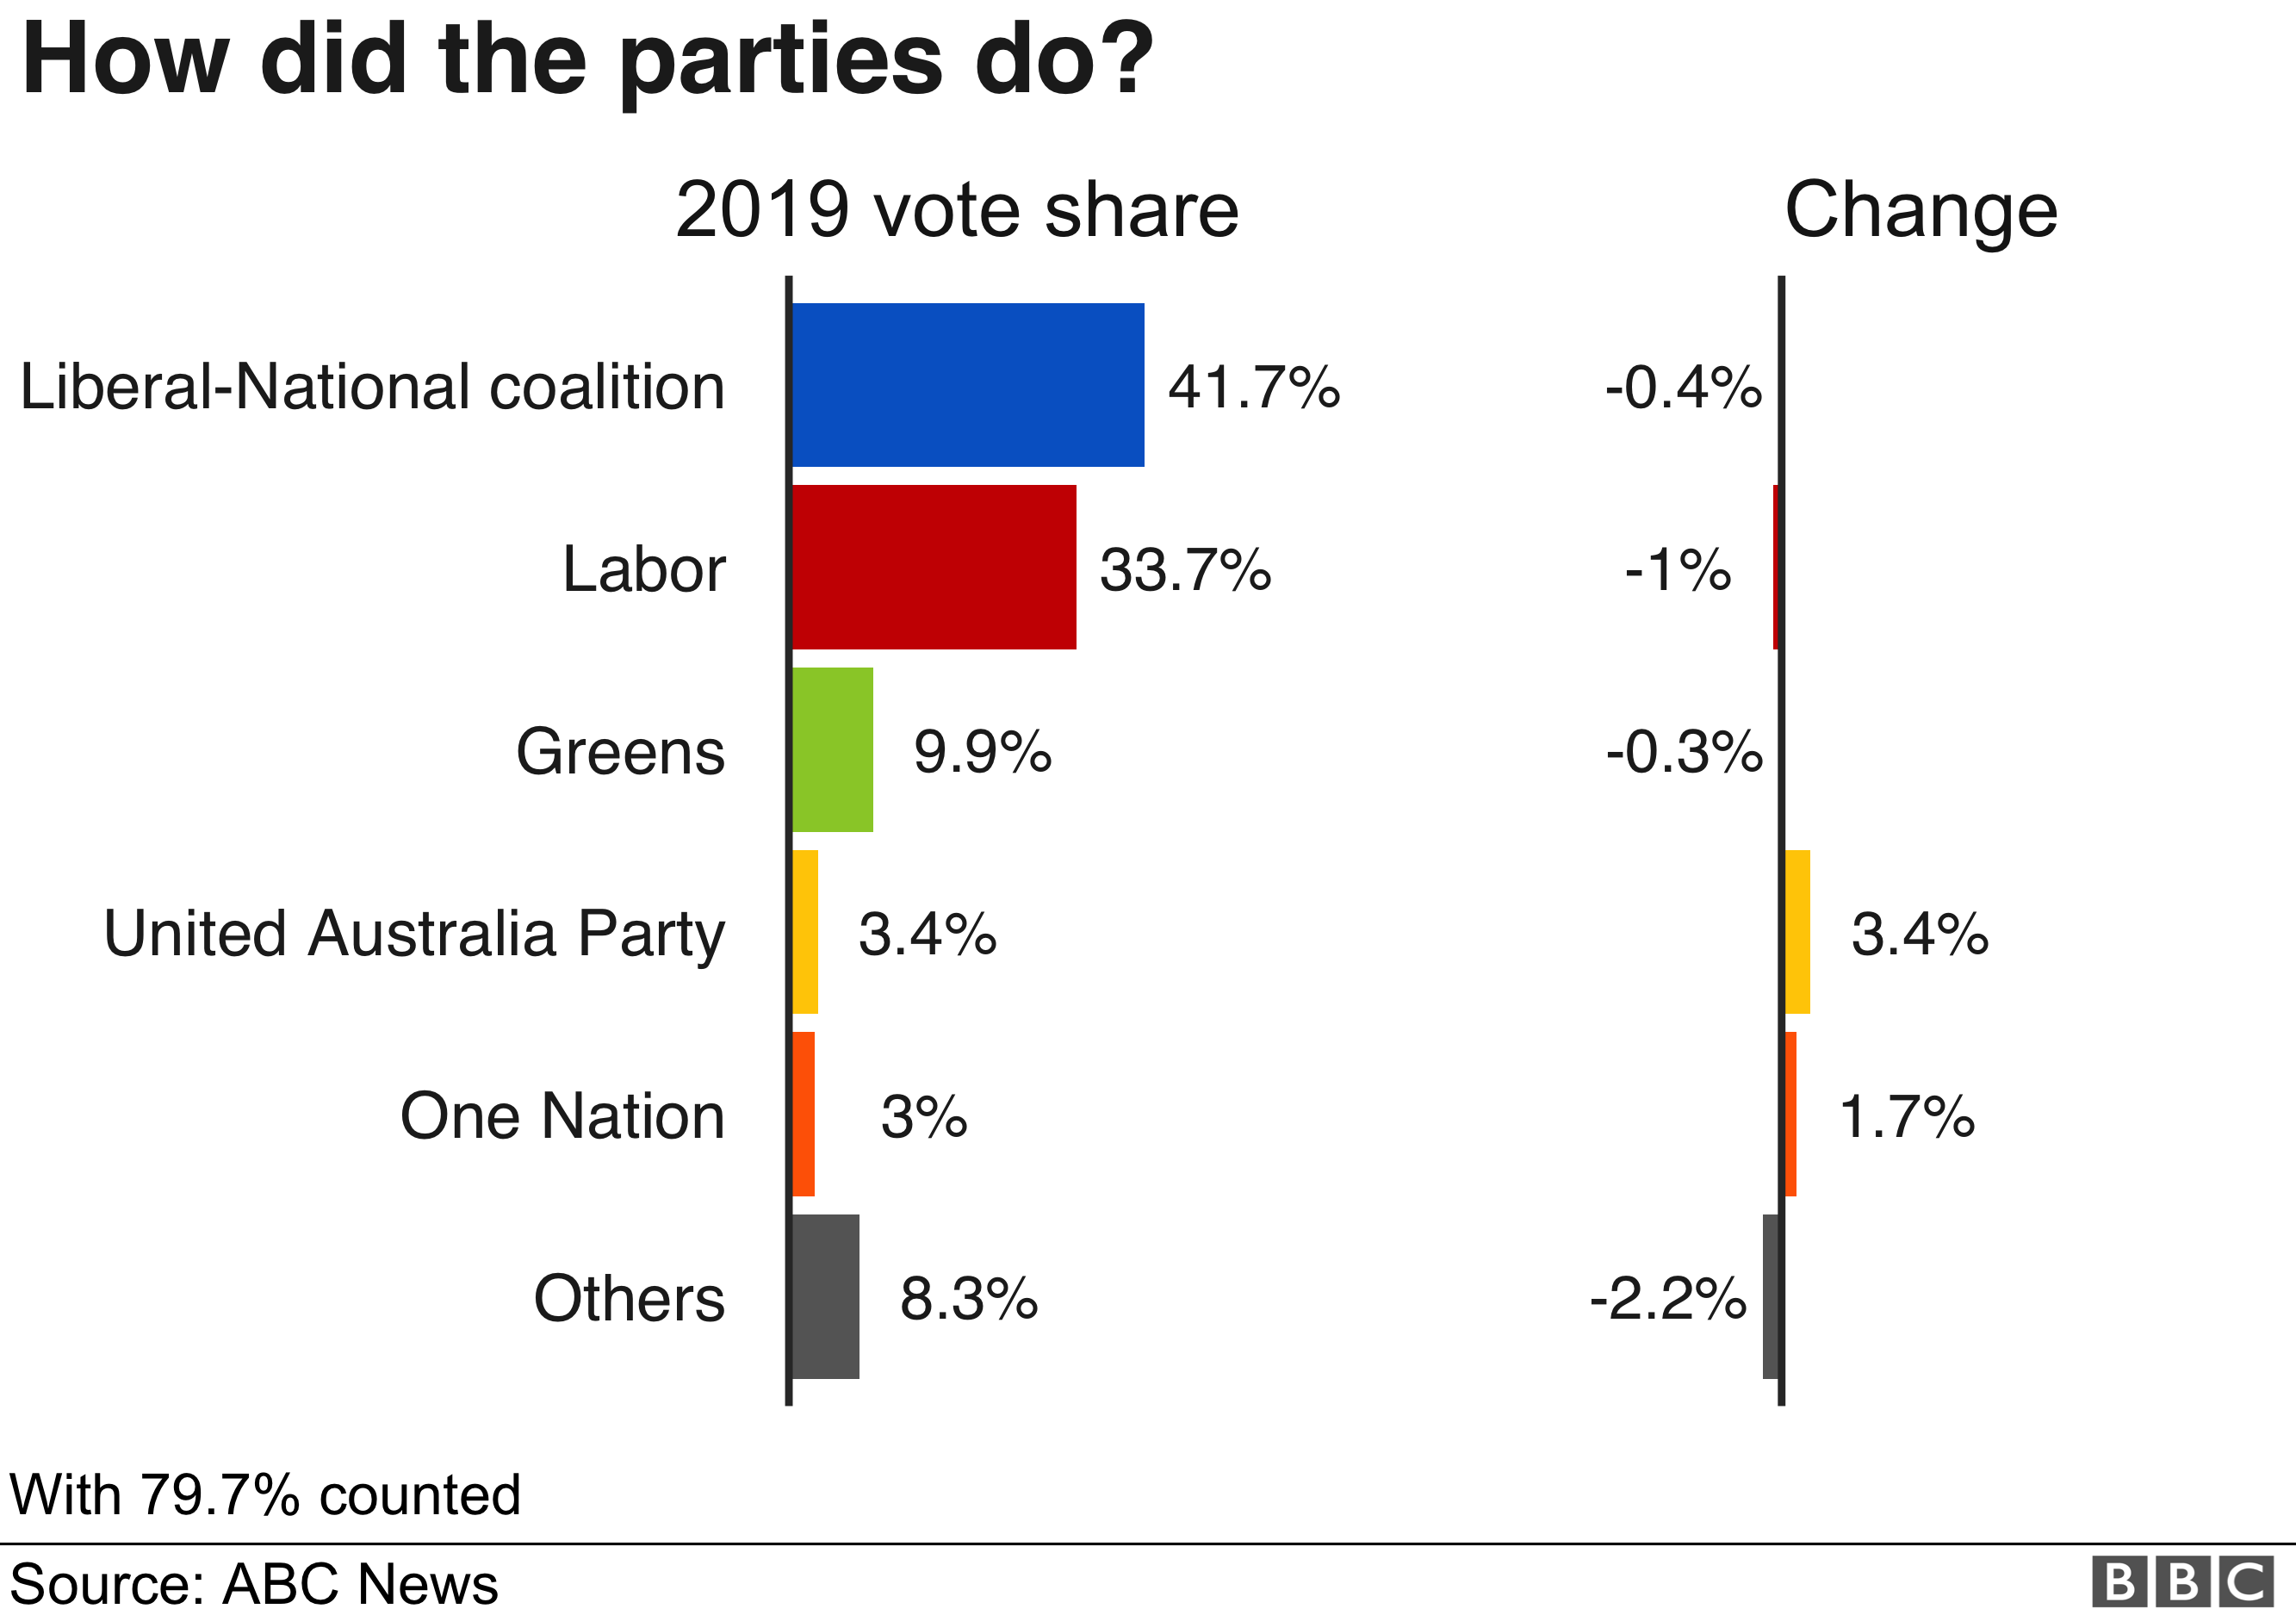 Graphic: Australian election results, vote percentages by party